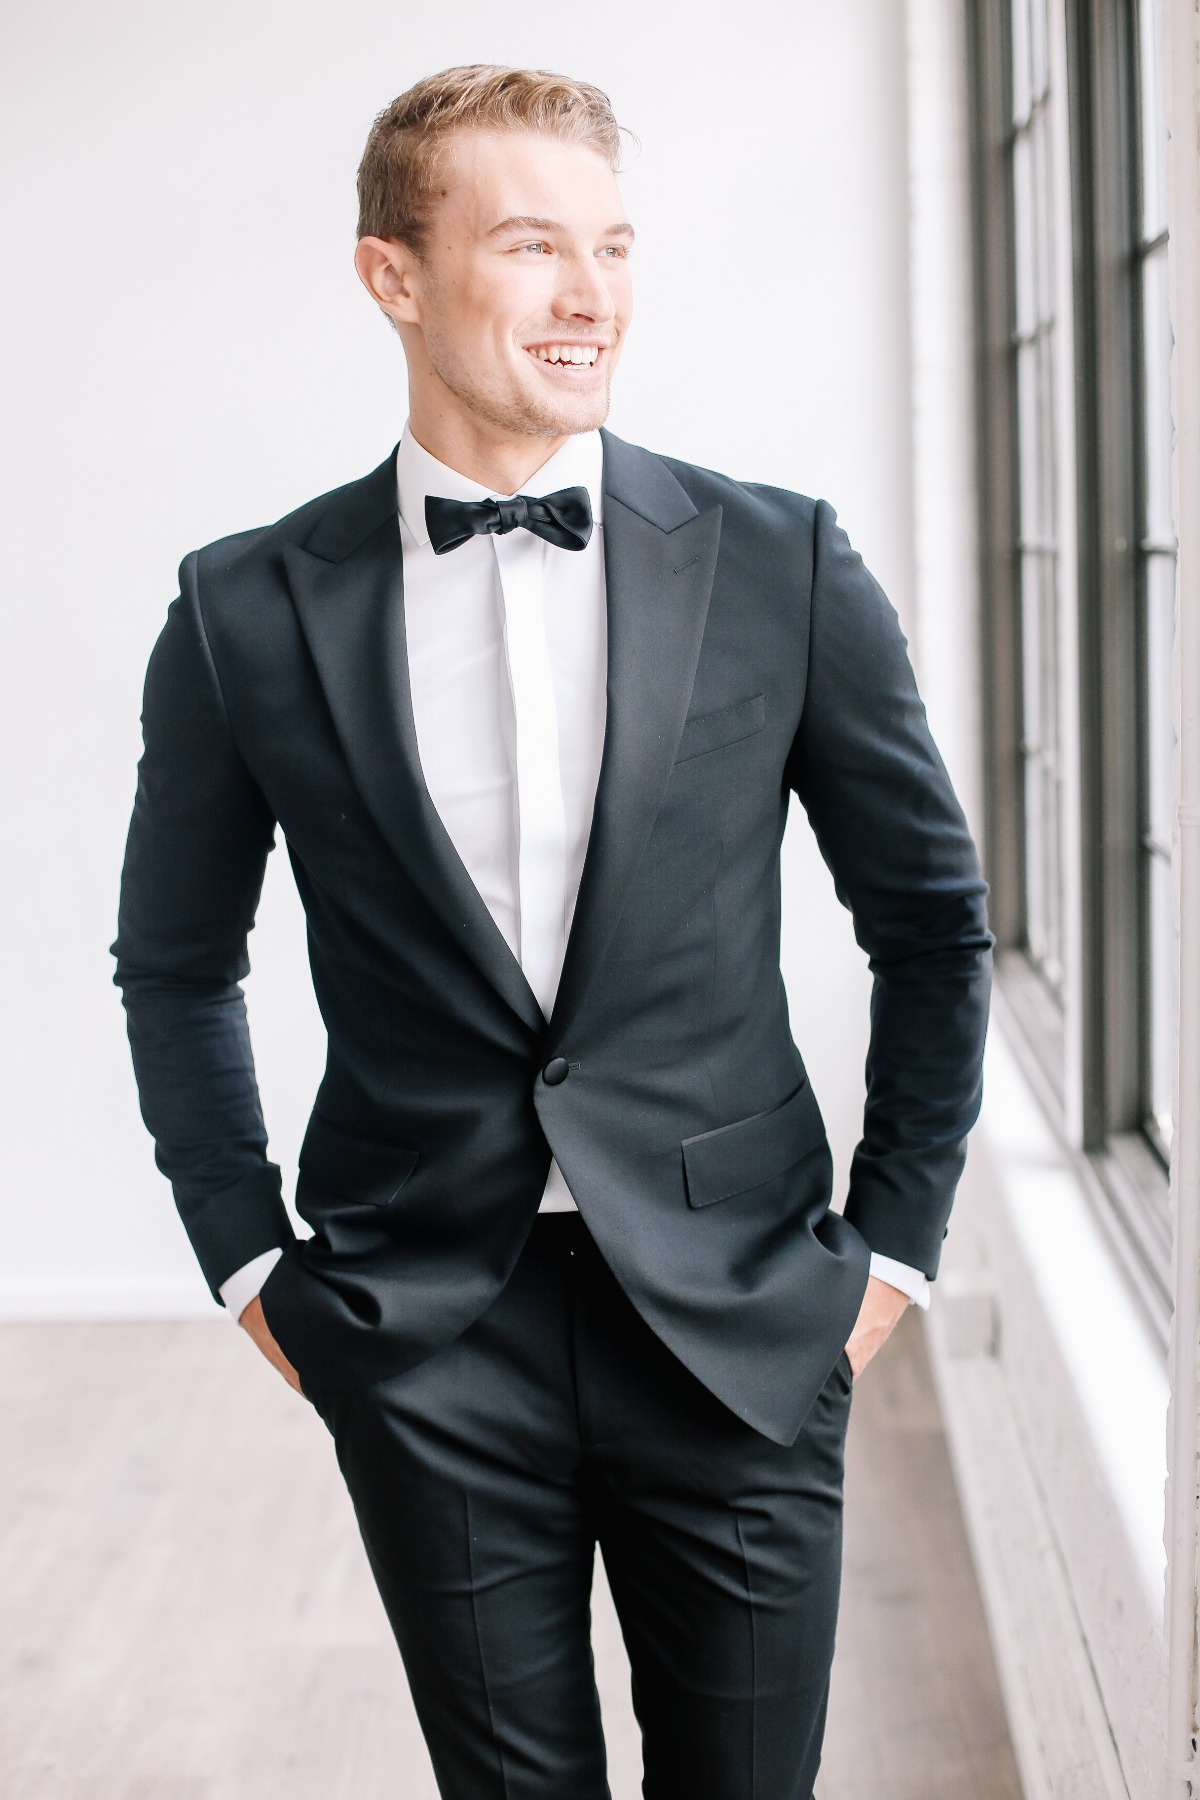 Stylish groom in black tie